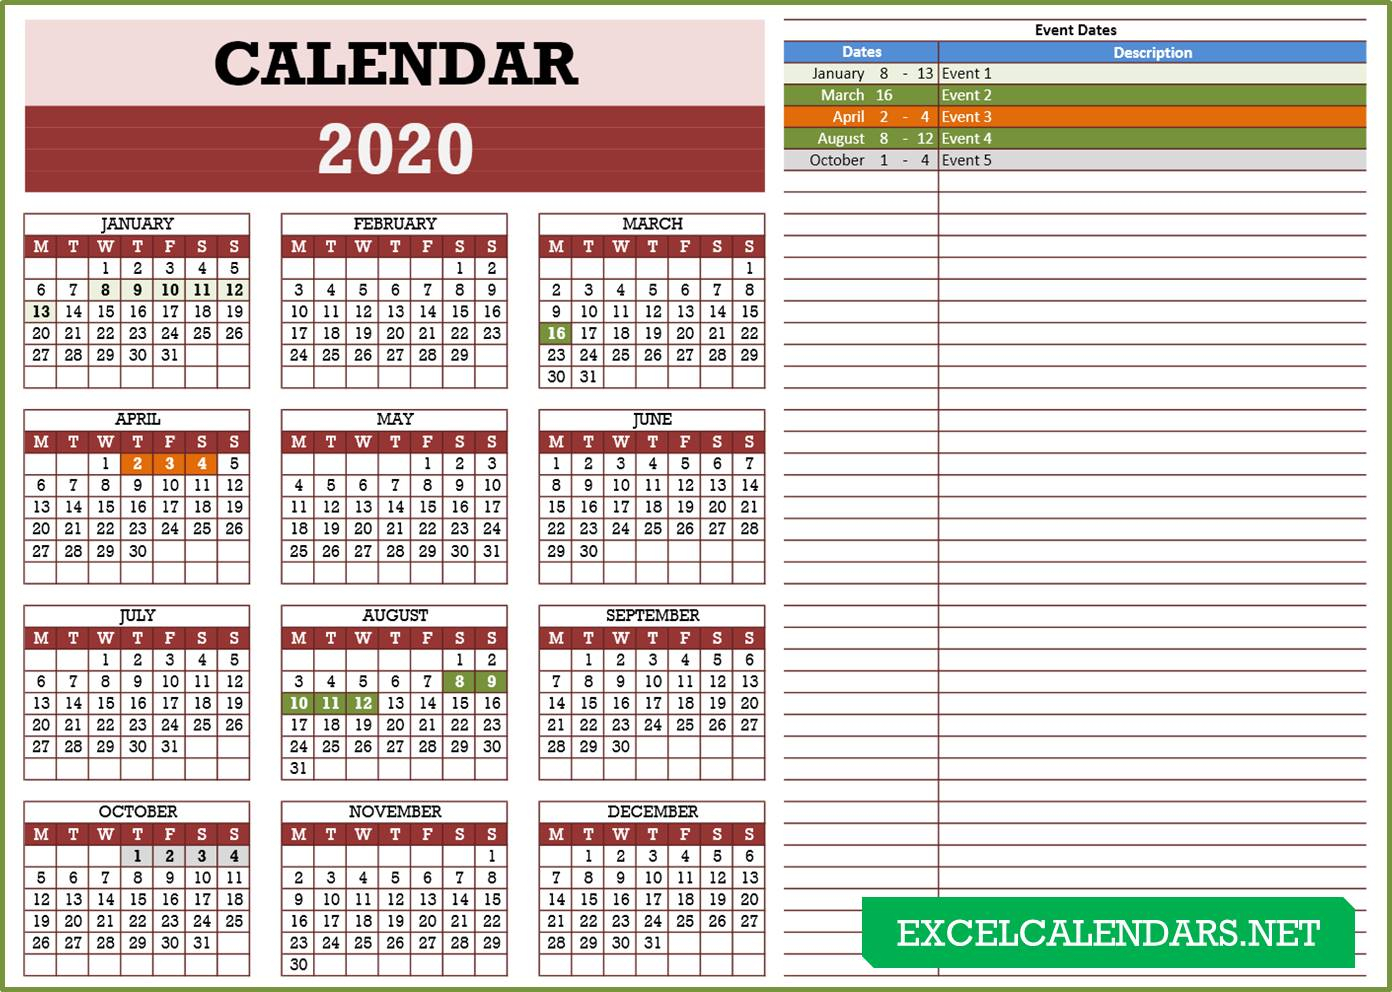 Yearly Calendar Templates For Year 2019 | 2020 | 2021